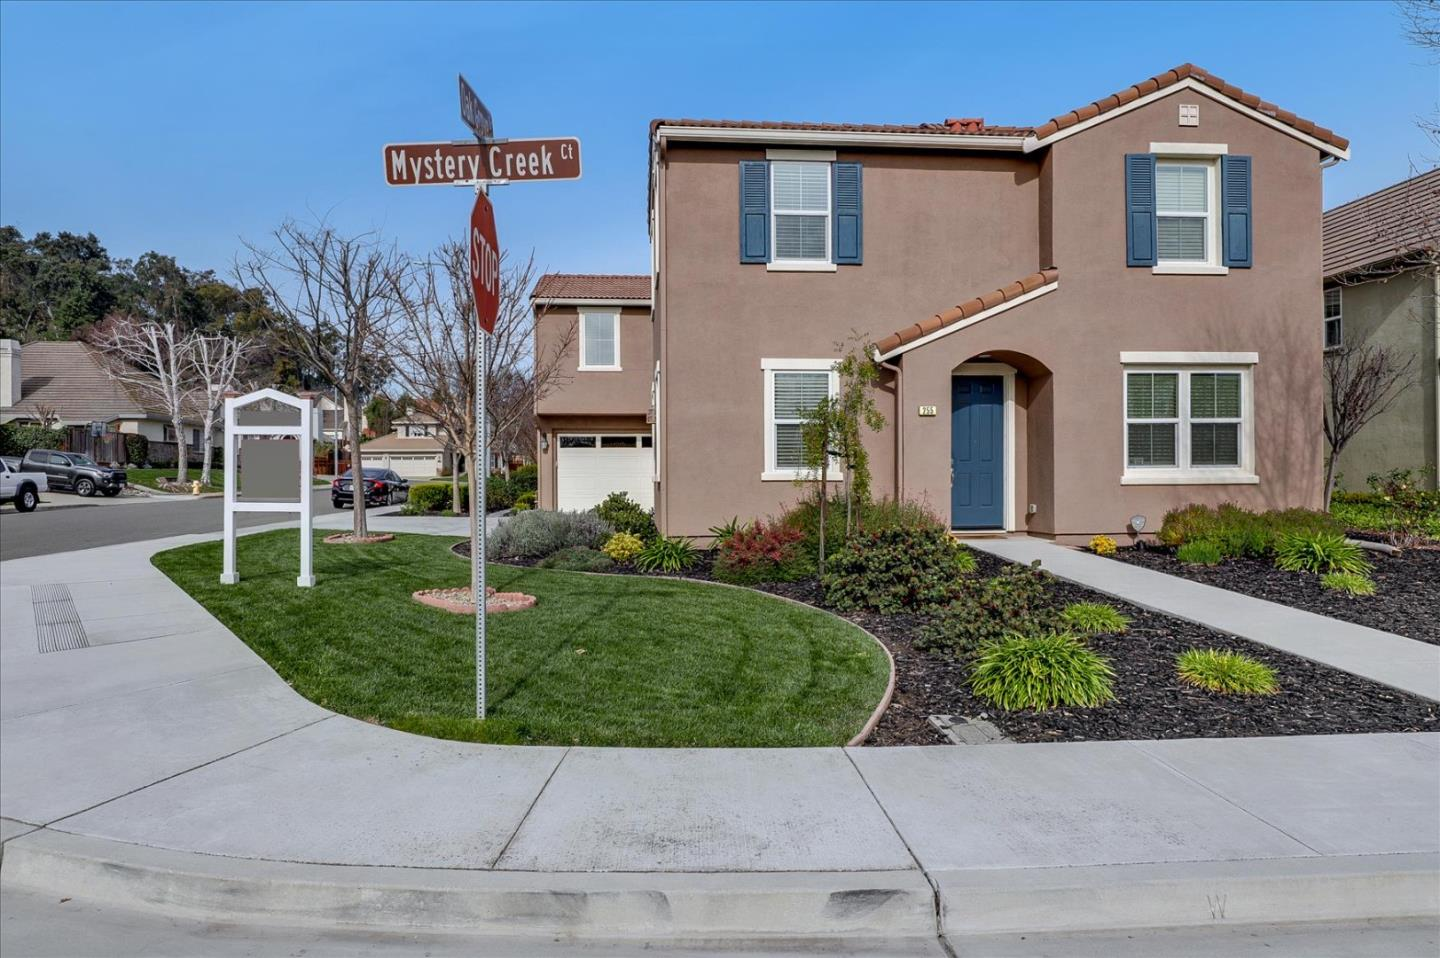 Detail Gallery Image 1 of 1 For 255 Mystery Creek Ct, Morgan Hill,  CA 95037 - 4 Beds | 3/1 Baths